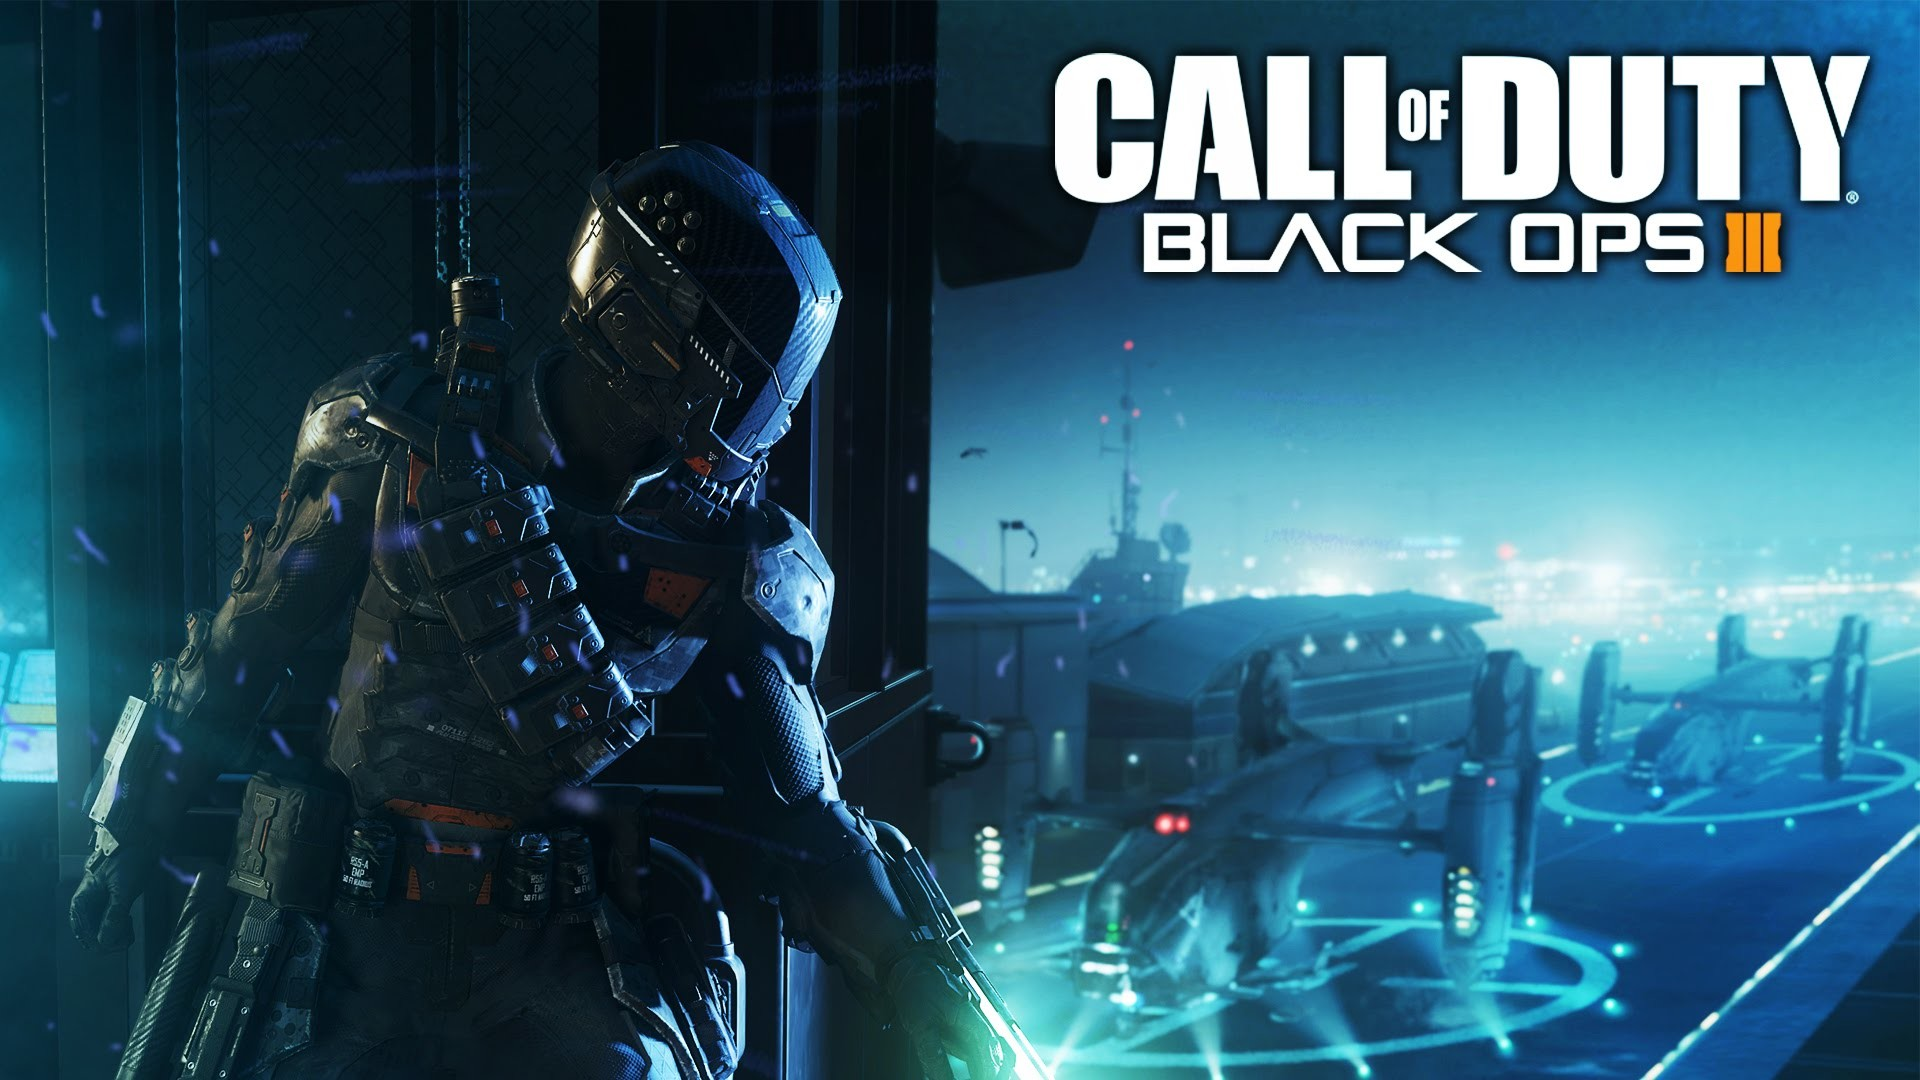 Black Ops 3 Wallpaper Call of Duty 27